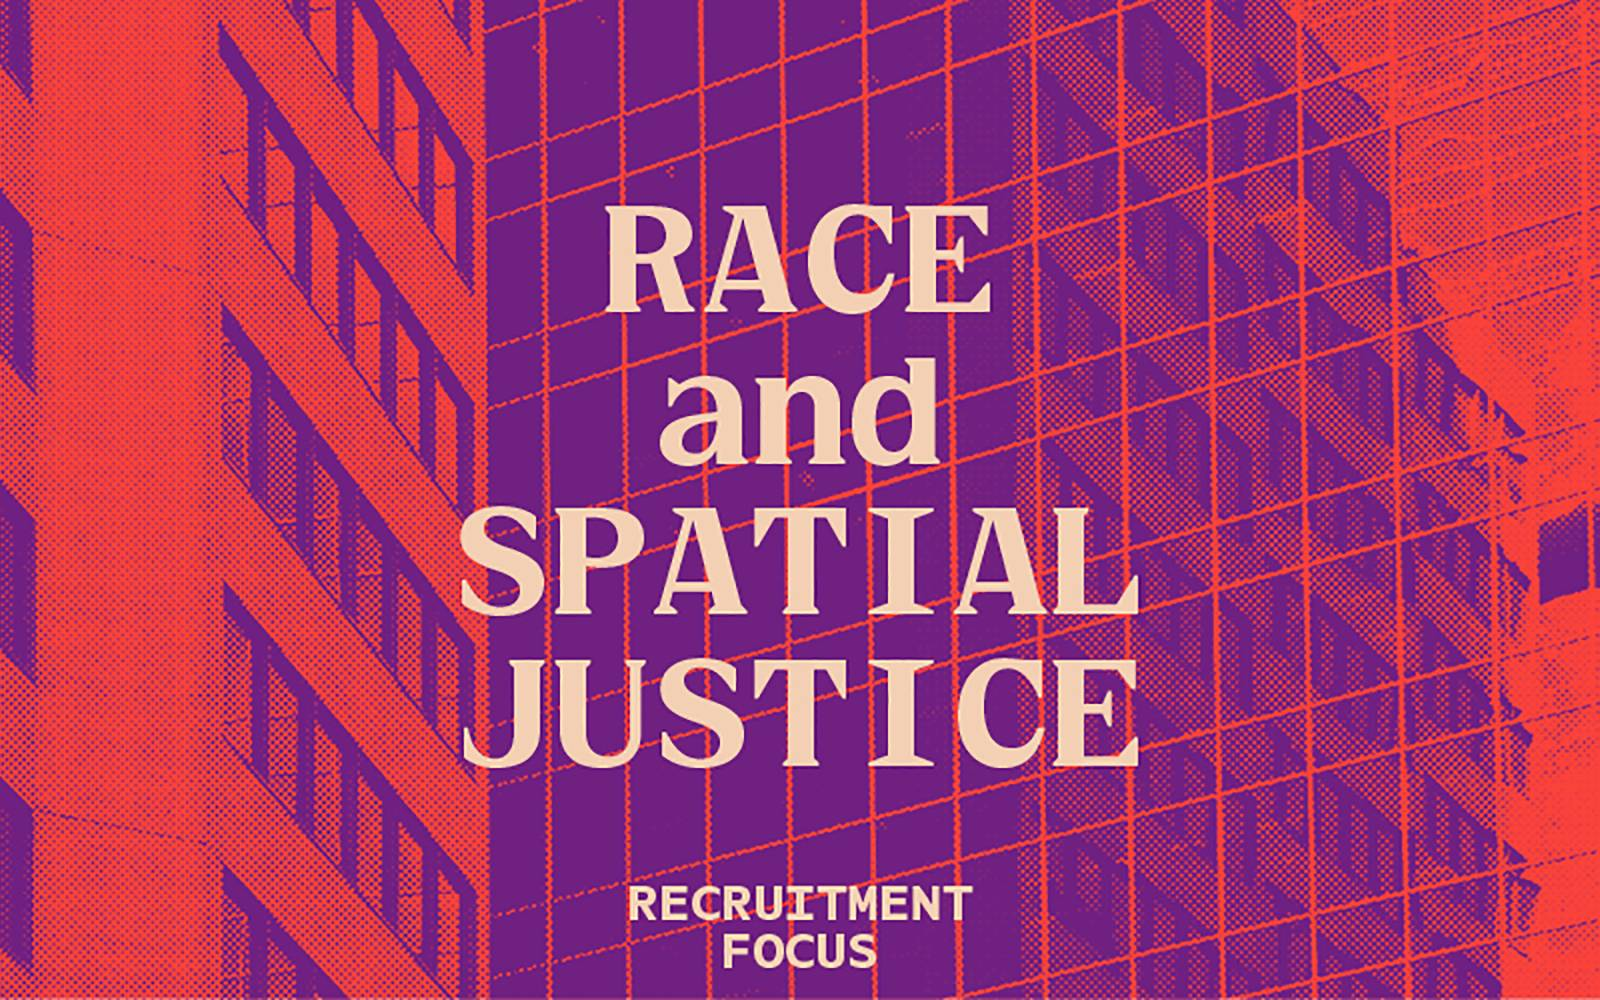 Race and Spatial Justice Recruitment Focus image